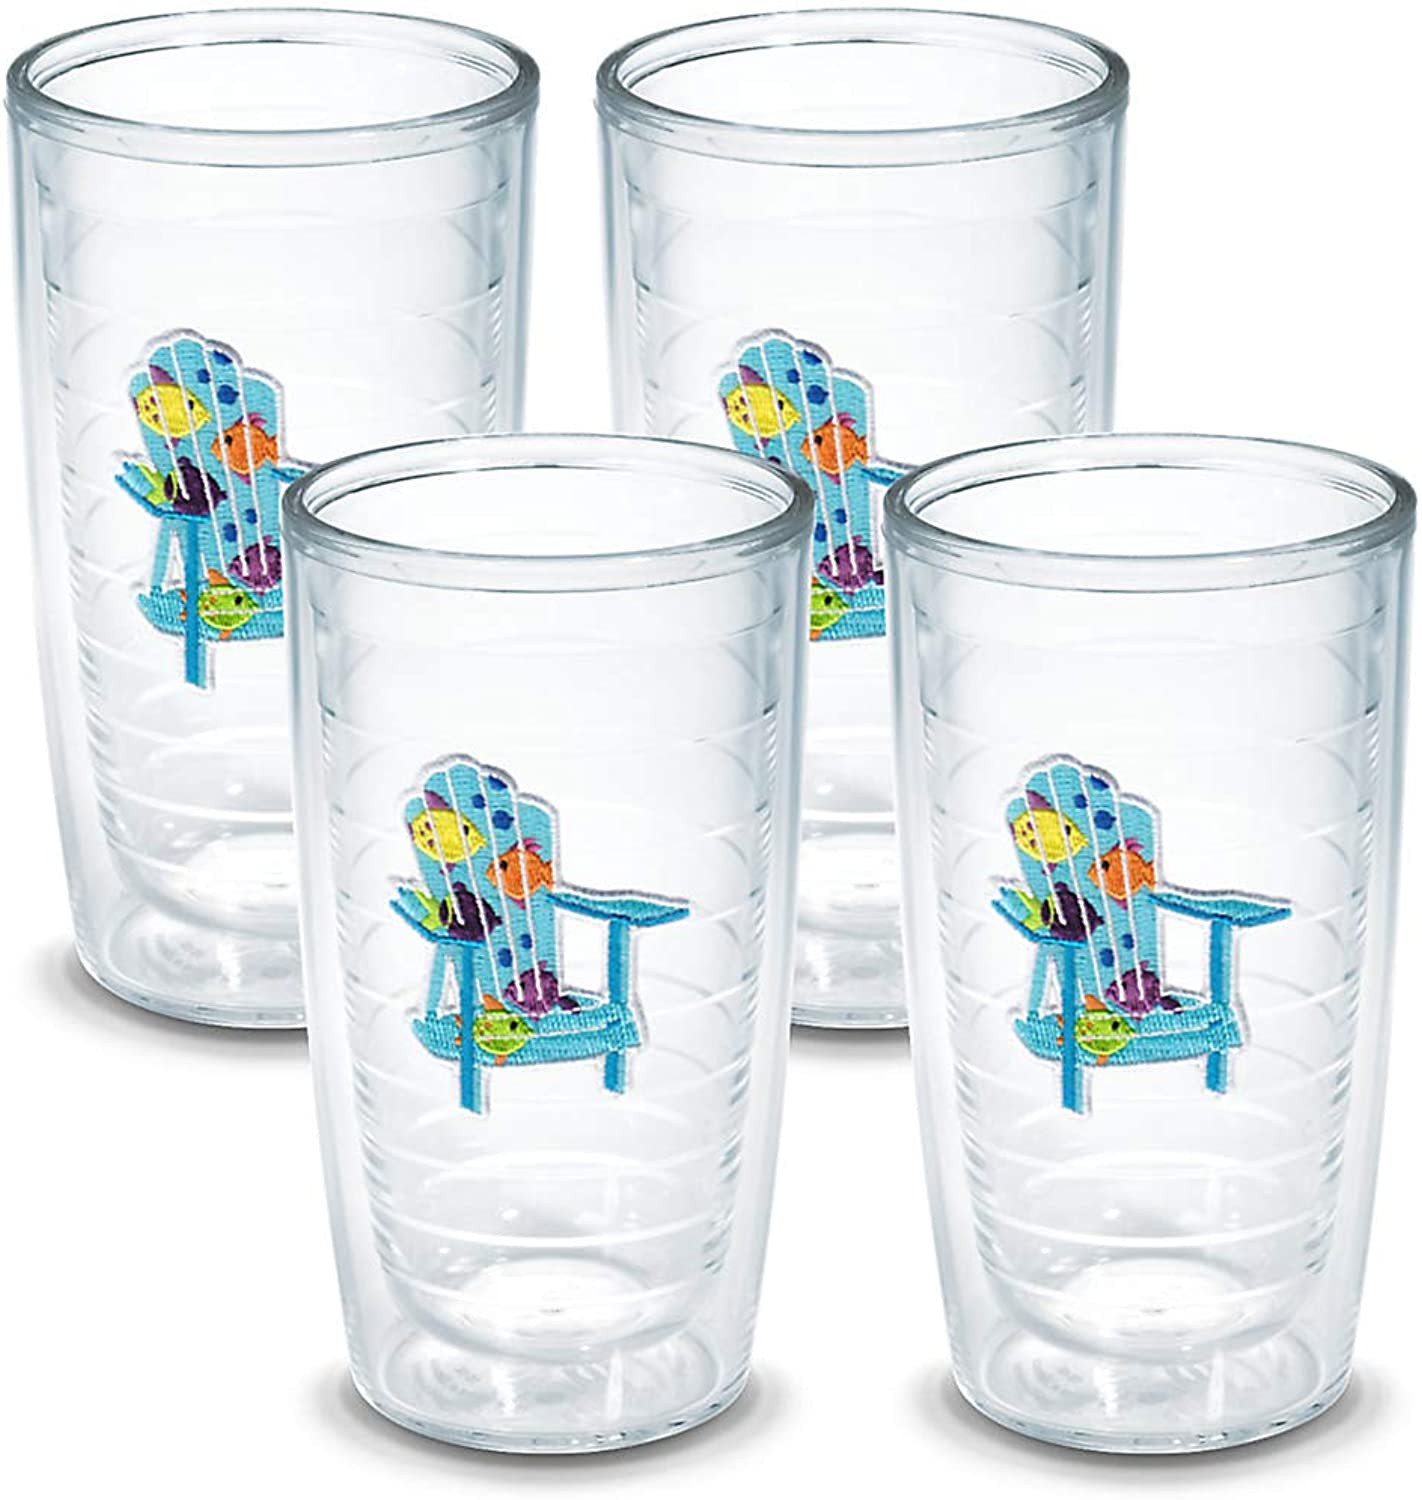 TERVIS Tumbler, 16-Ounce, Tropical Fish Adirondack Chairs , 4-Pack